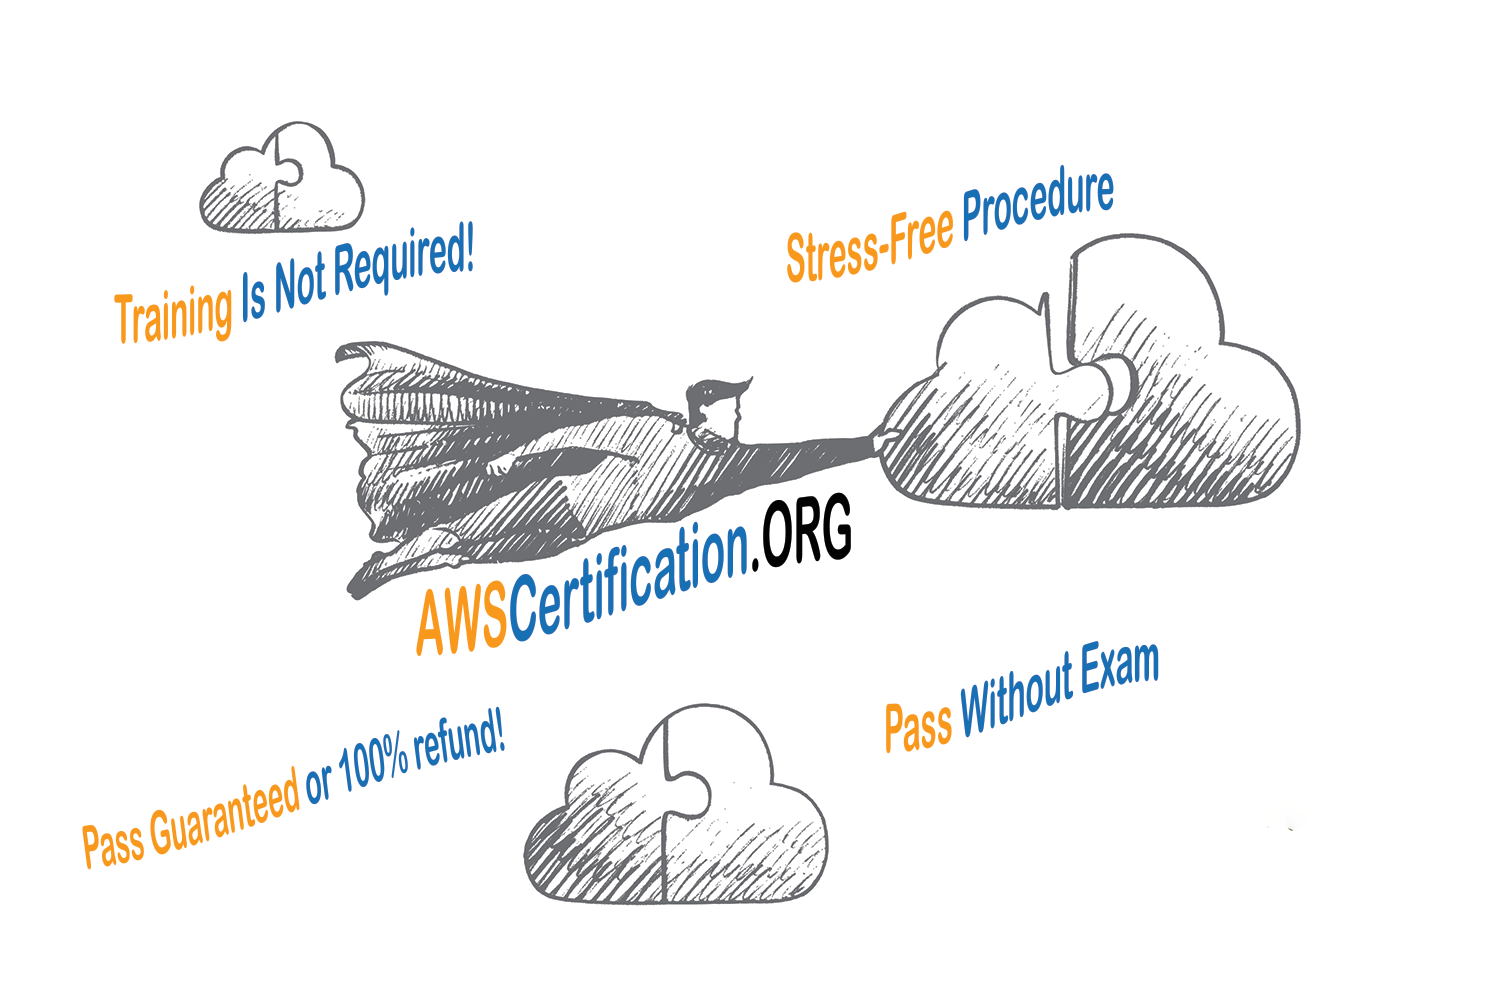 Amazon AWS Certification Exam | Cost, Associate, Professional